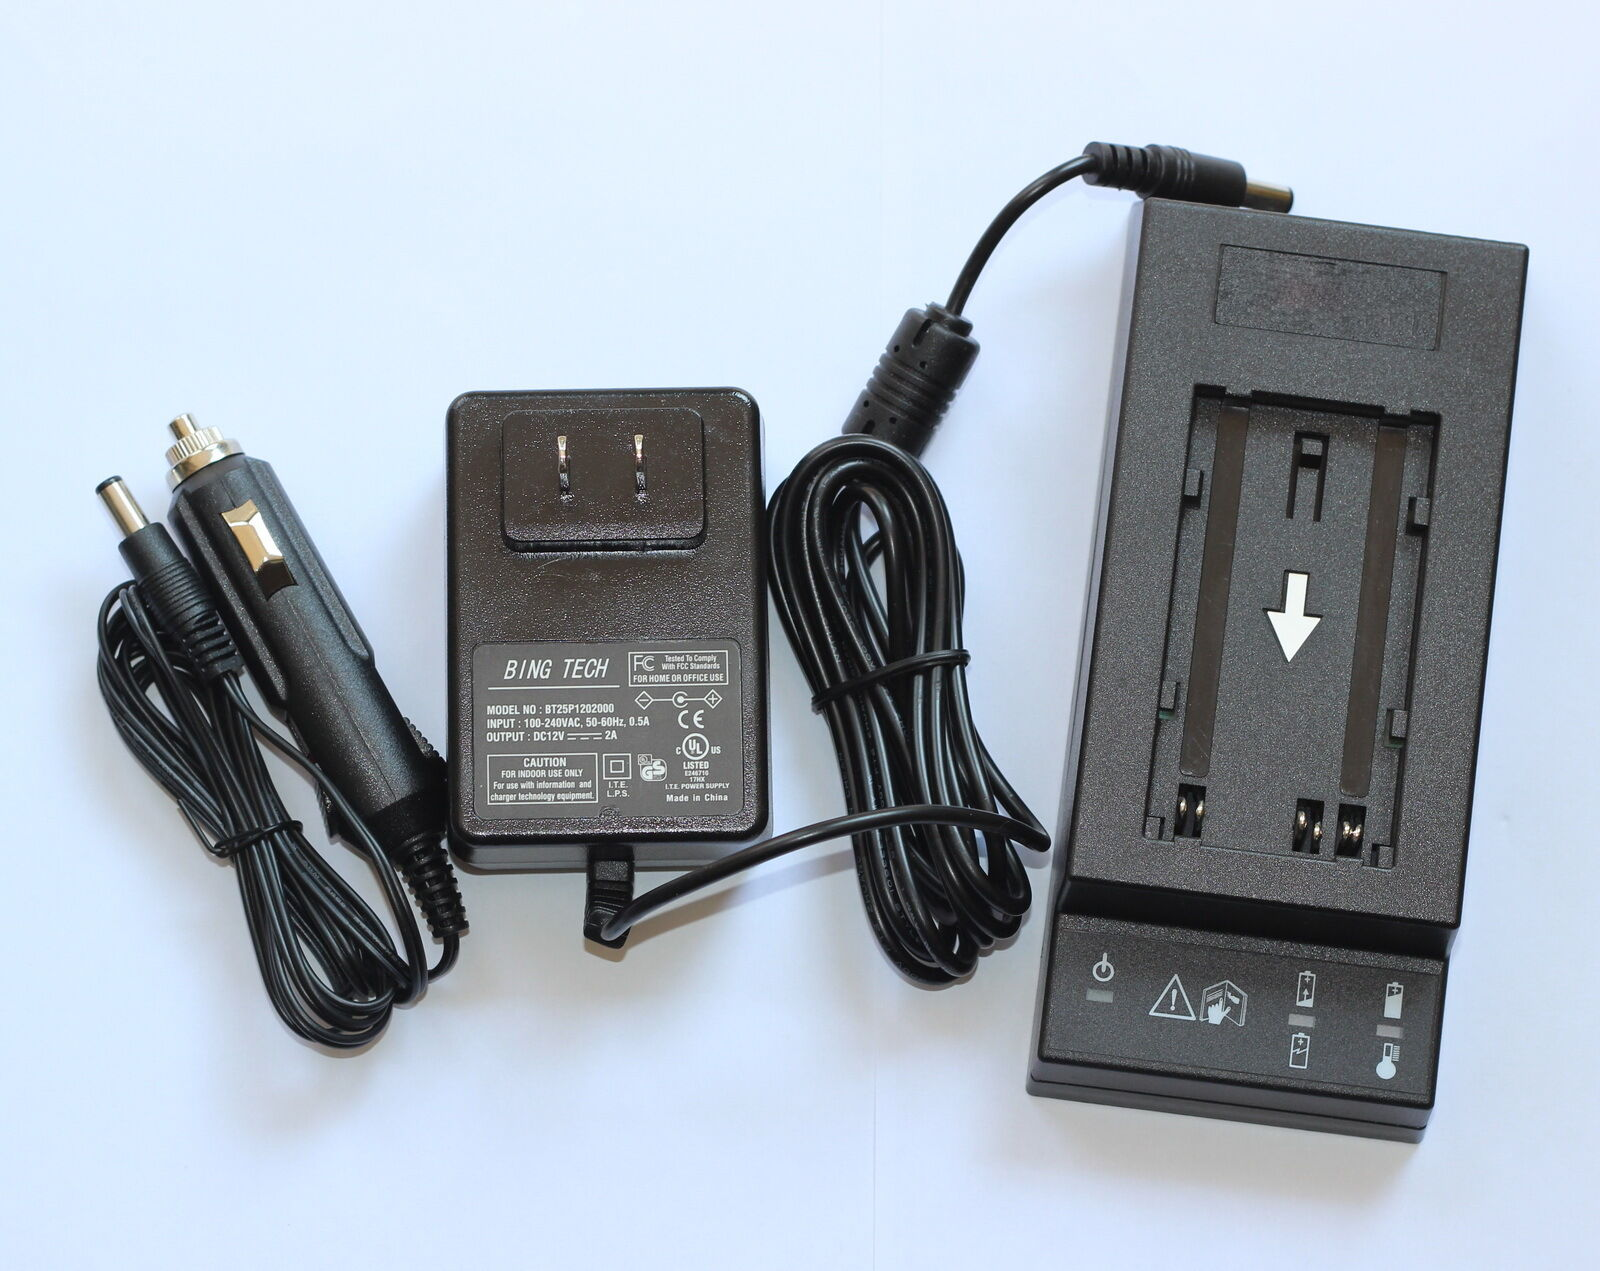 NEW G GKL211 Charger for LE ICA GEB221 and GEB211 Li-Ion battery Total Stations